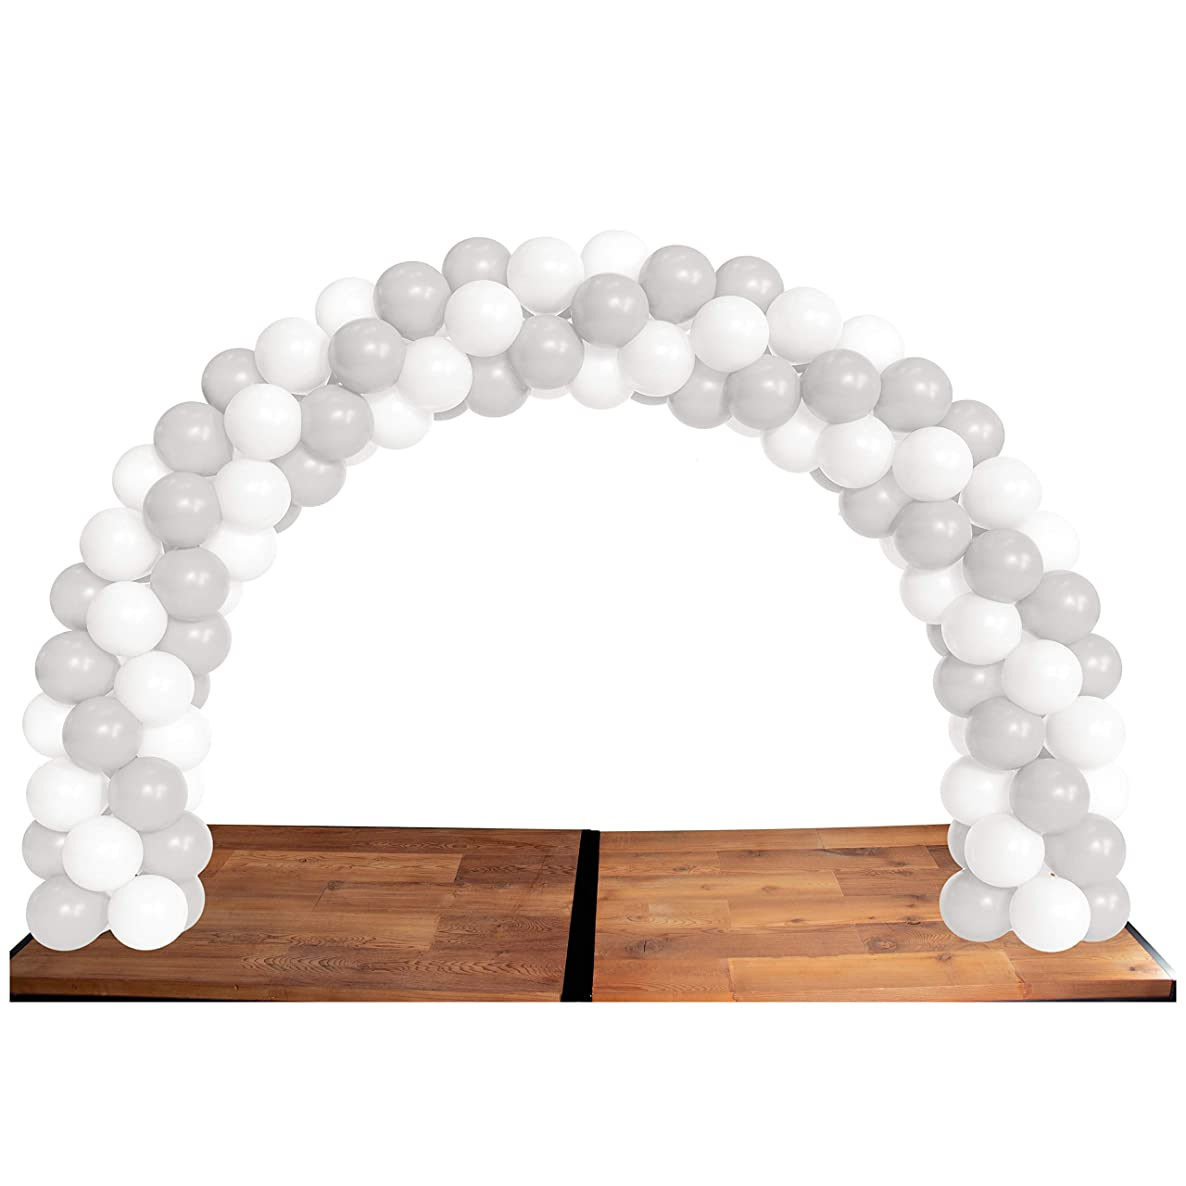 Balloon Arch Kit with 40 White and 40 Silver Balloons - Balloon Table Arch Set for Birthdays, Special Events, Weddings, Anniversaries, Baby Showers, Corporate Events, 12-inch Diameter Balloons